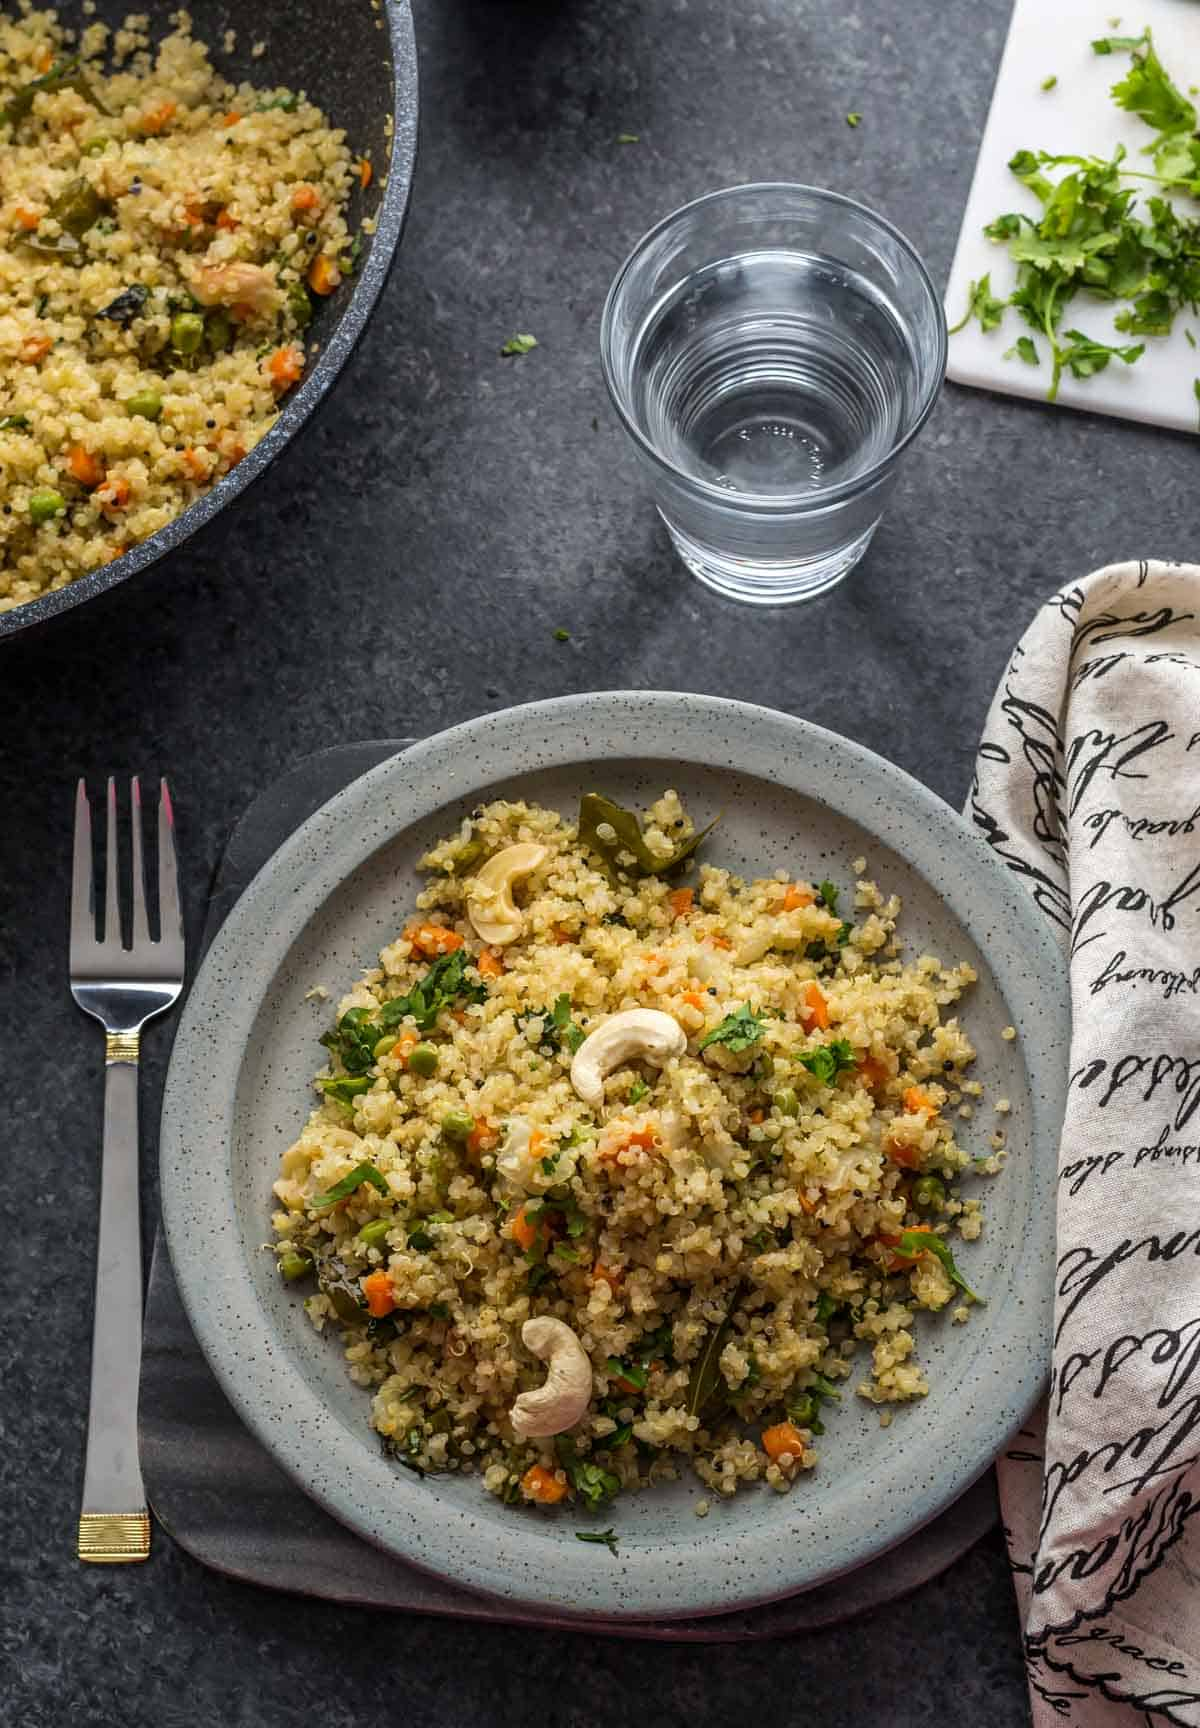 Have you tried Vegetable Quinoa Pulao? Just like vegetable pulao it is delicious and is a great way to work more veggies into your meals.